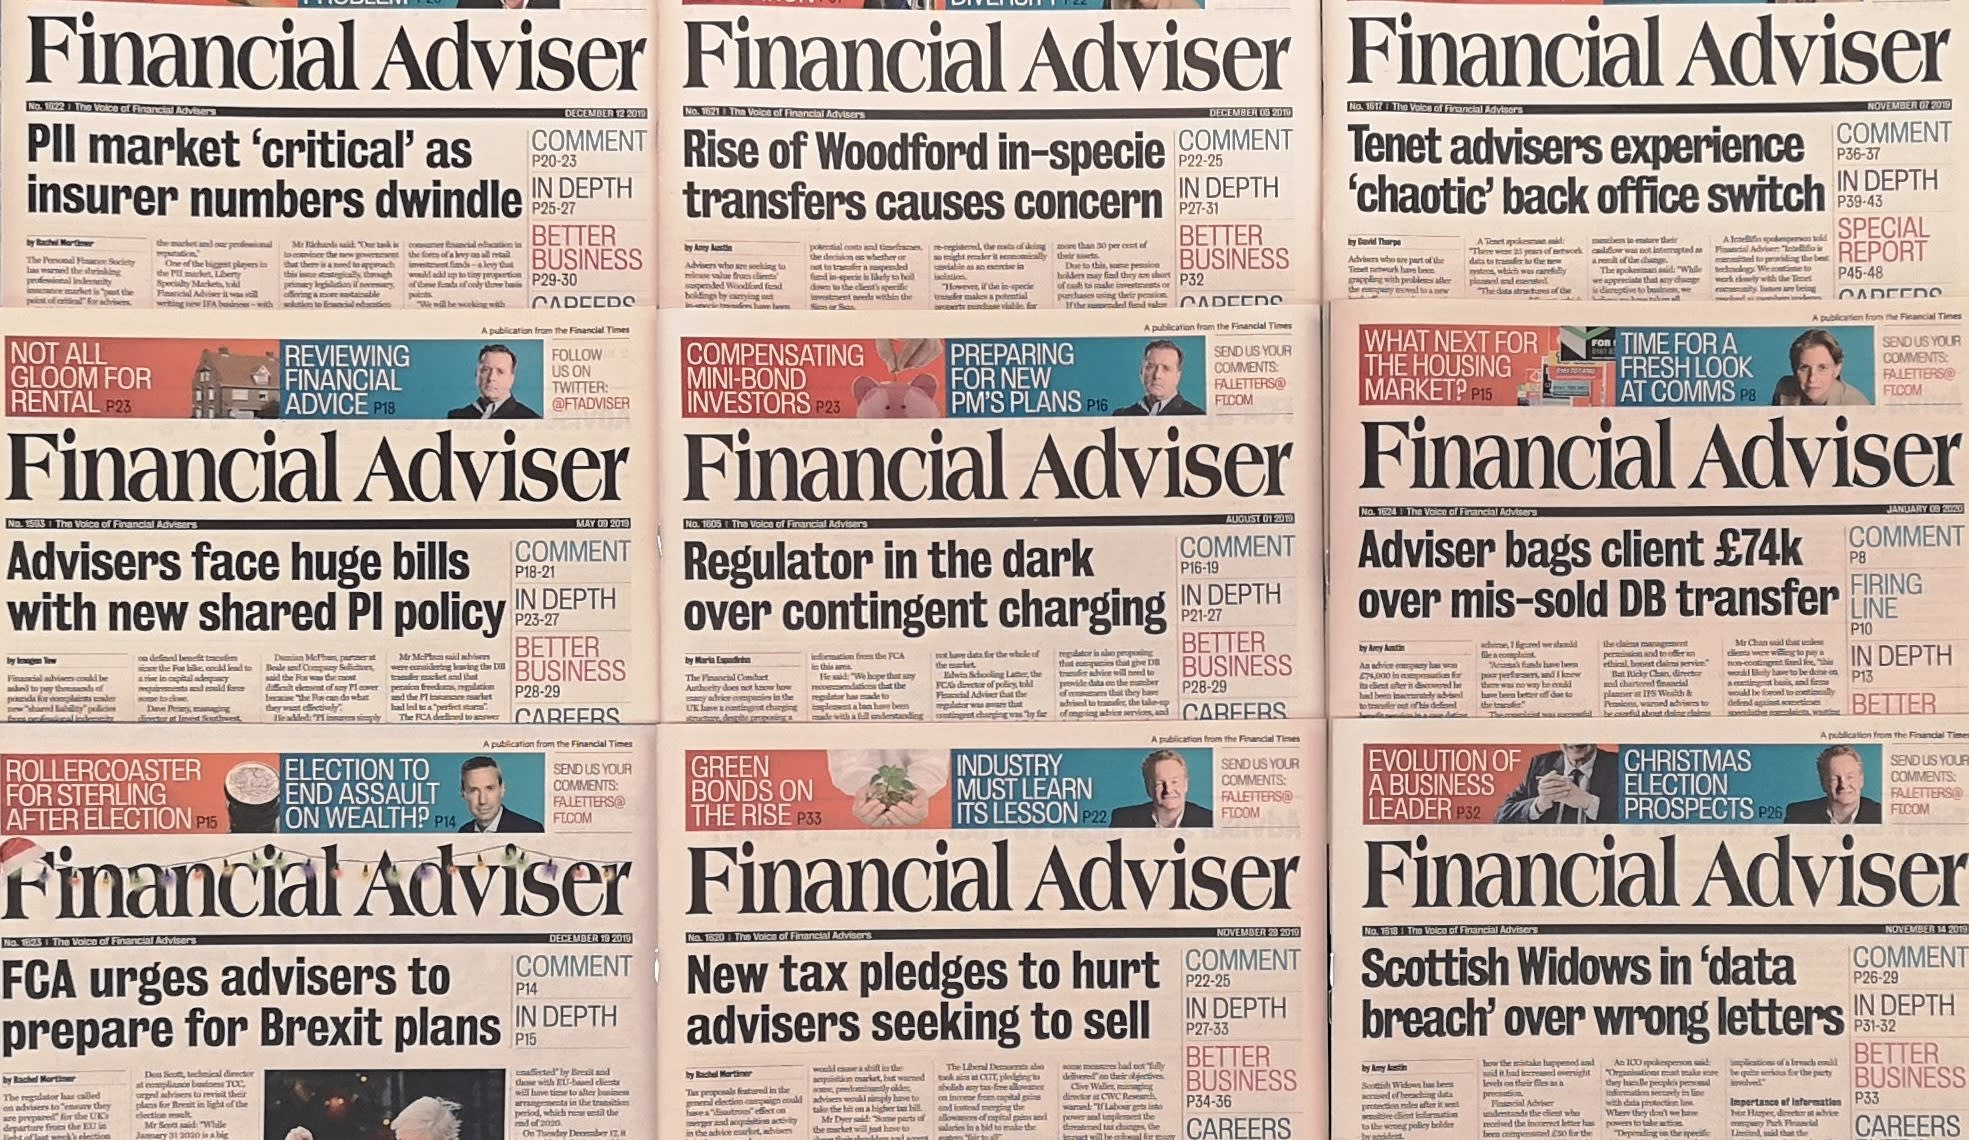 Robo-adviser closes and adviser fees challenged: the week in news